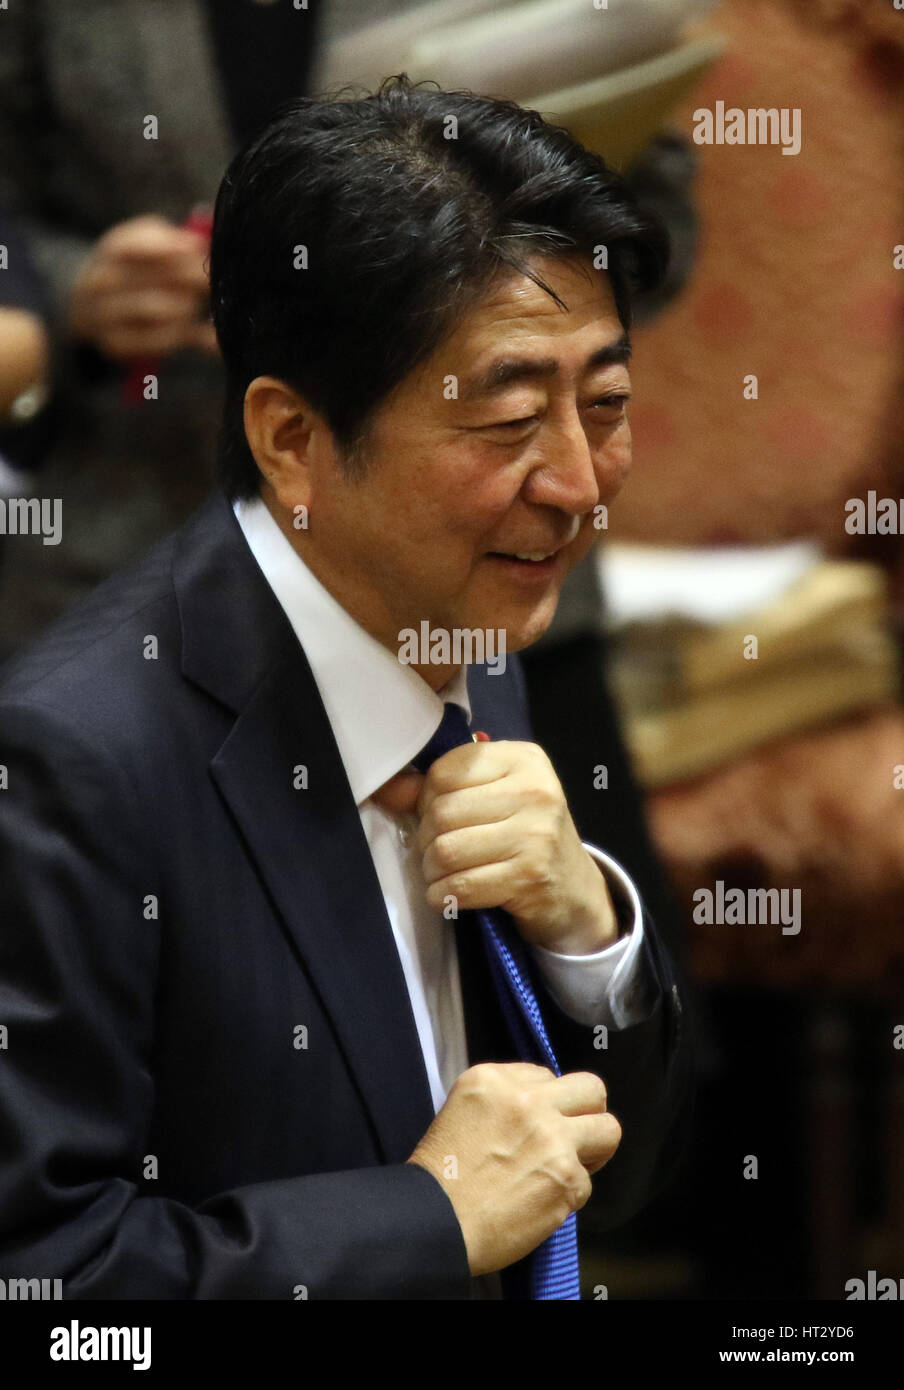 Tokyo, Japan. 6th Mar, 2017. Japanese Prime Minister Shinzo Abe adjusts his tie as he leaves the Upper House budget - Stock Image